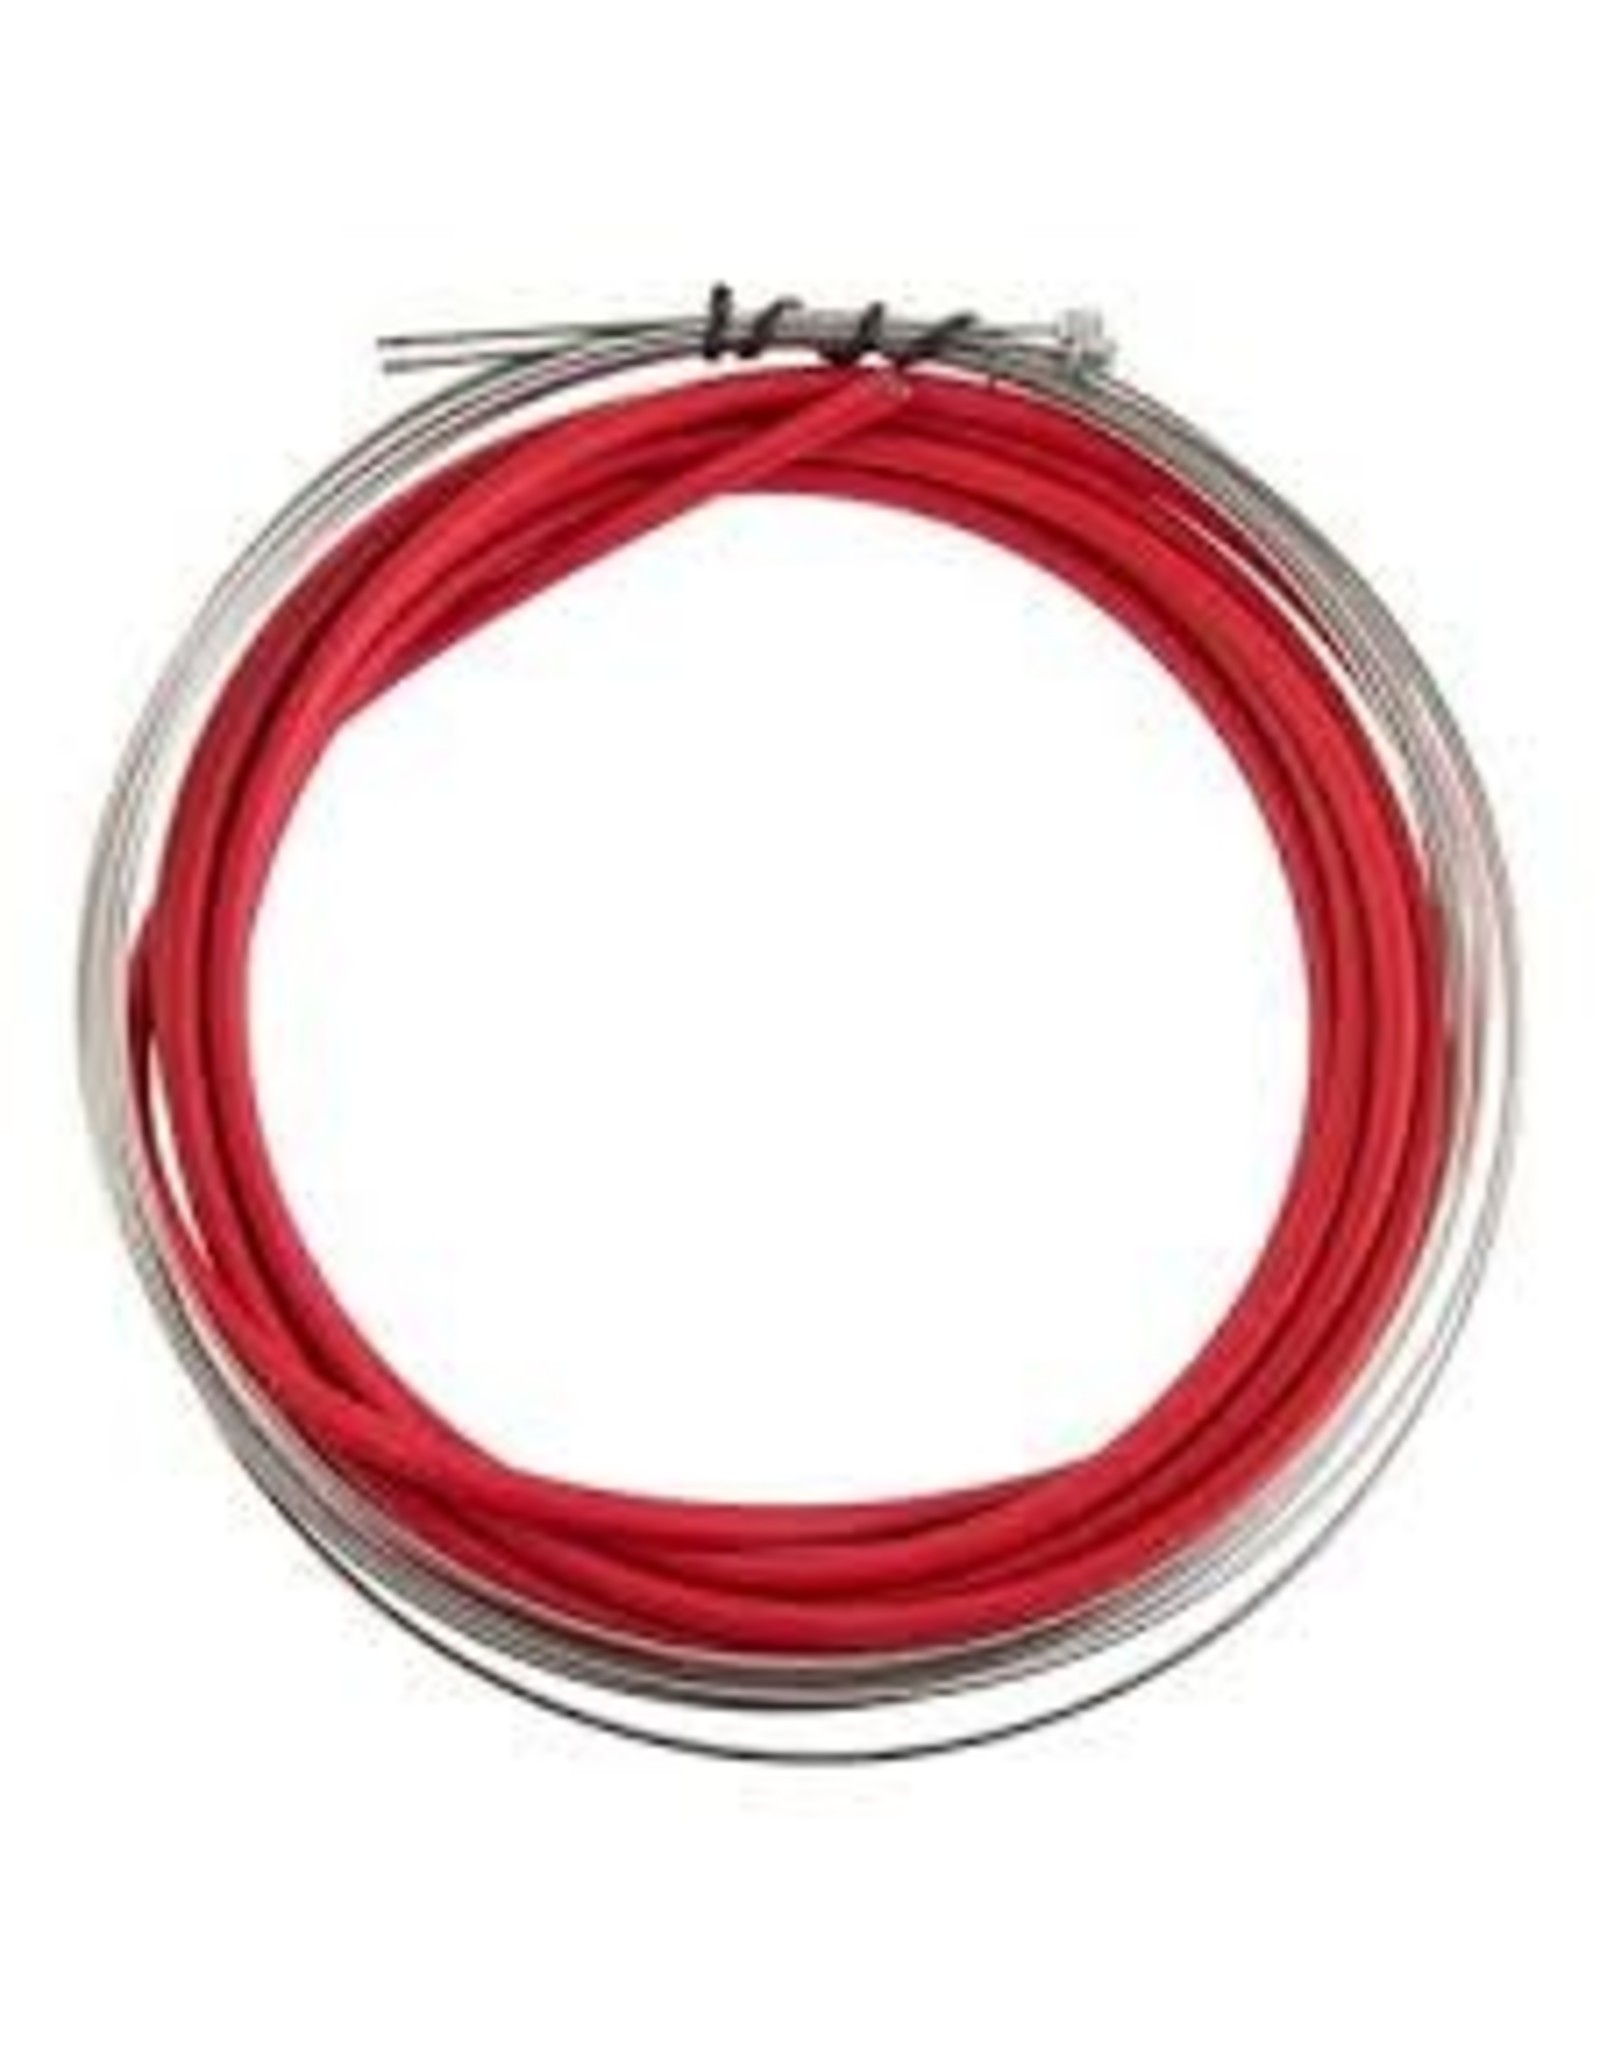 Cable Brake Clk Kit F&R SS Spt Rd/Mt Red